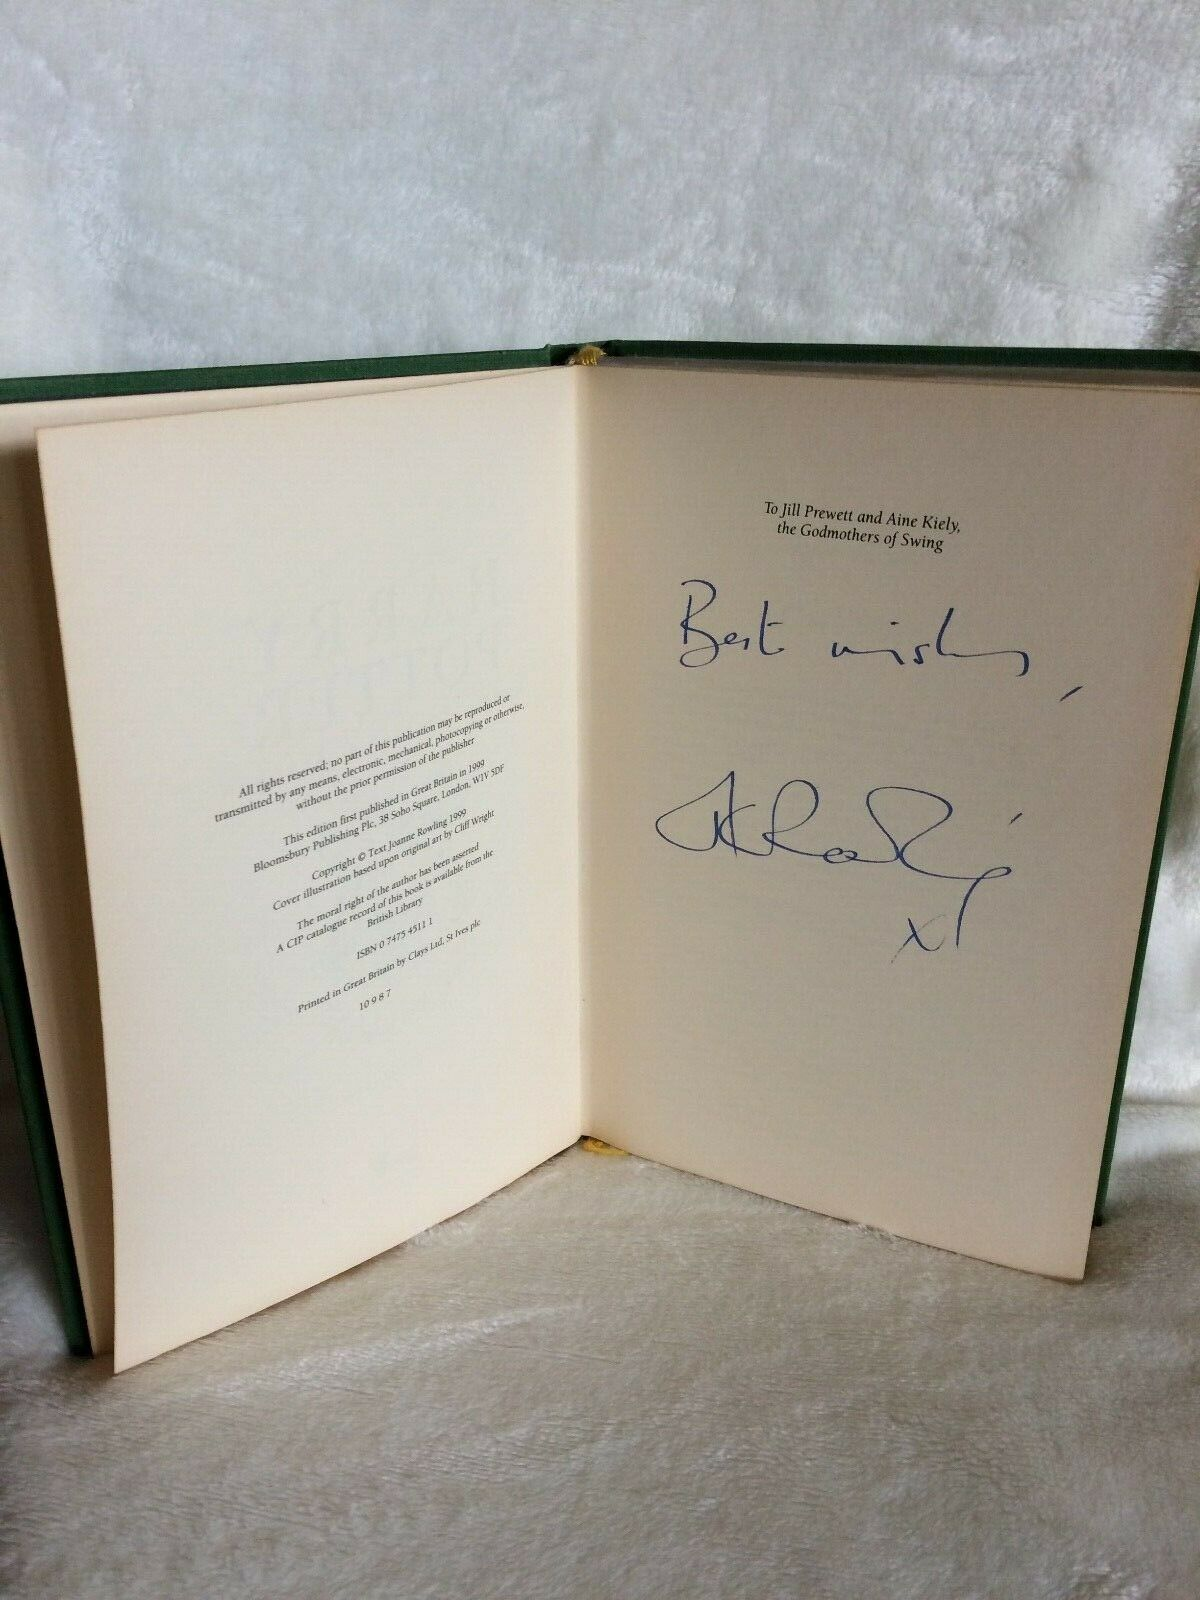 J.K. Rowling signature forgery found inside a Deluxe Edition Harry Potter and the Prisoner of Azkaban. Sold on eBay by MColes78.